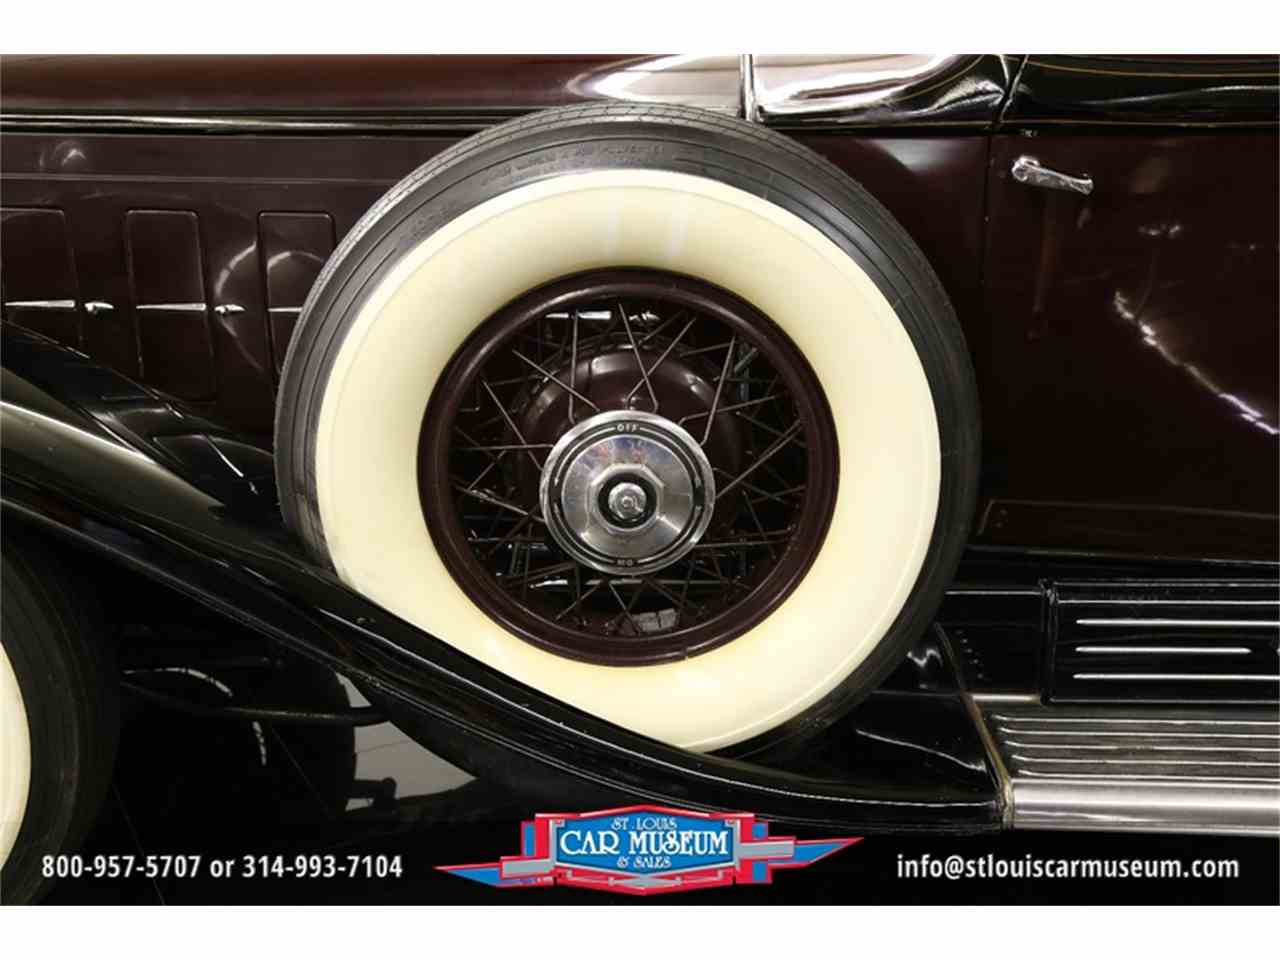 Large Picture of Classic 1931 Cadillac V-16 Madam X Landau Sedan located in Missouri Offered by St. Louis Car Museum - JSU3